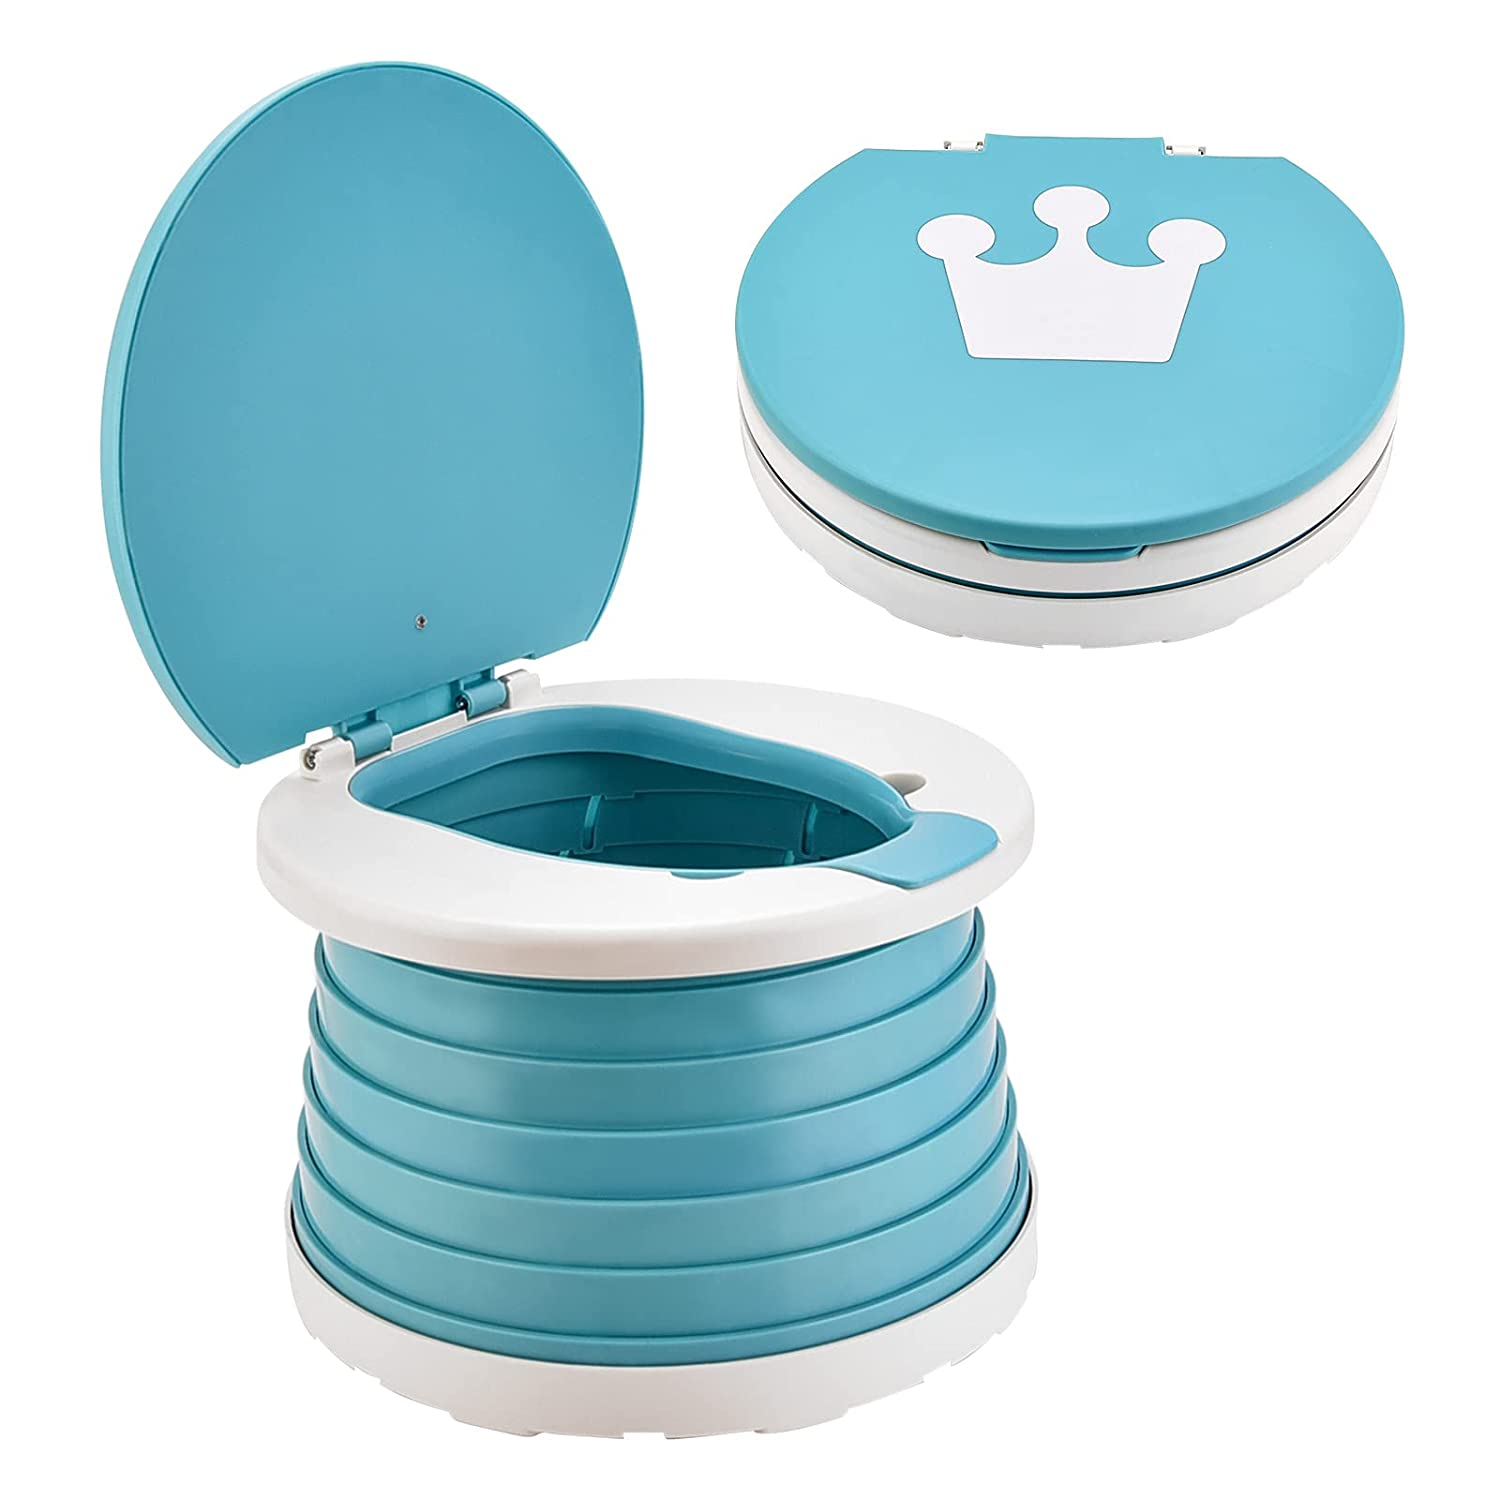 Travel Potty for Toddler, INSOUR Kids Portable Potty Training Toilet for Indoor and Outdoor, 2-in-1 Car Potty Chair for Baby